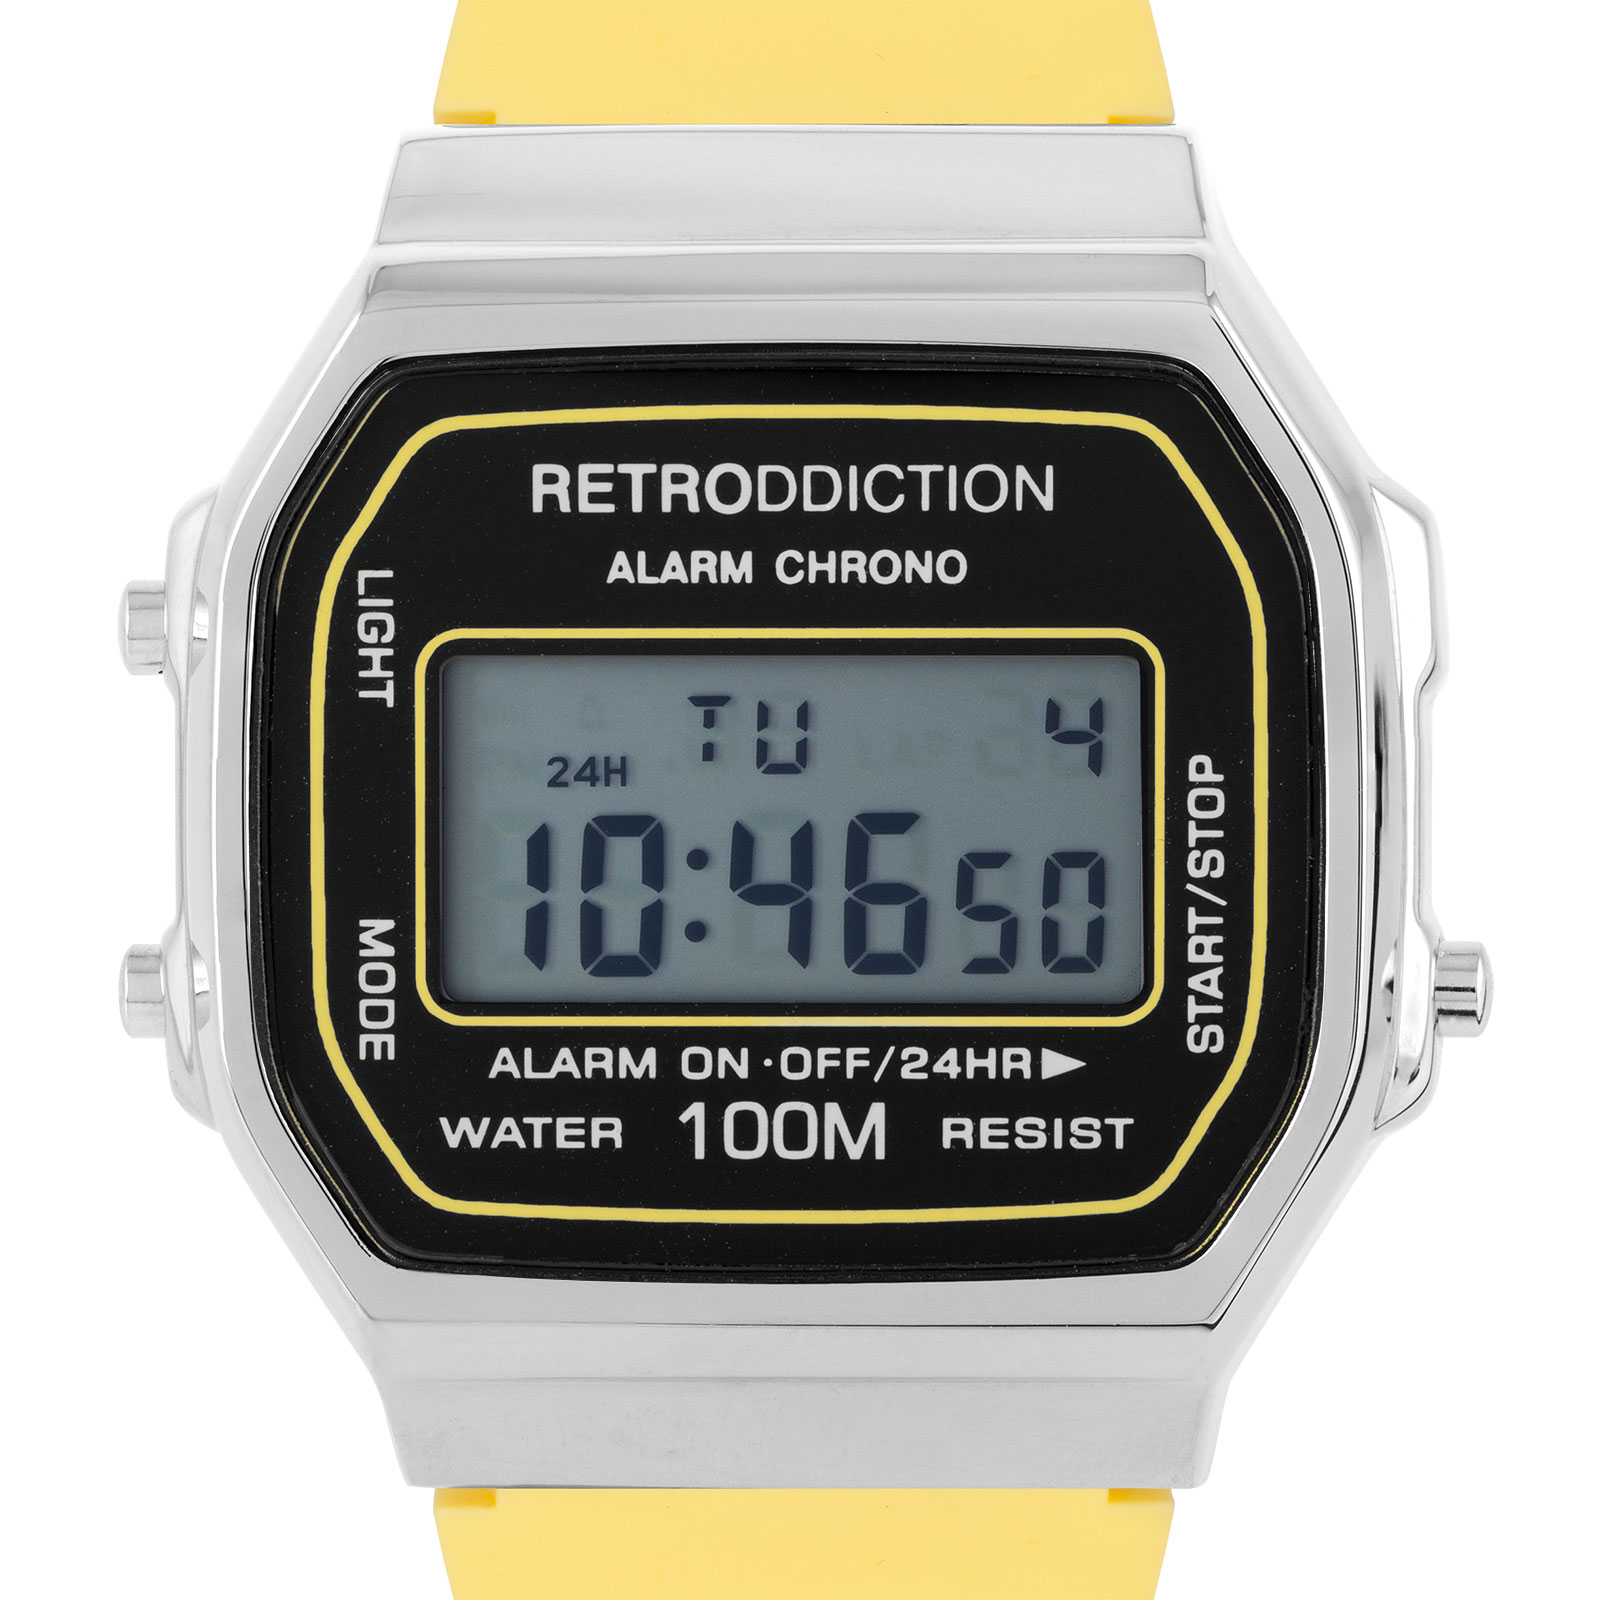 Retroddiction #11 - digitalklocka m. gult gummiband